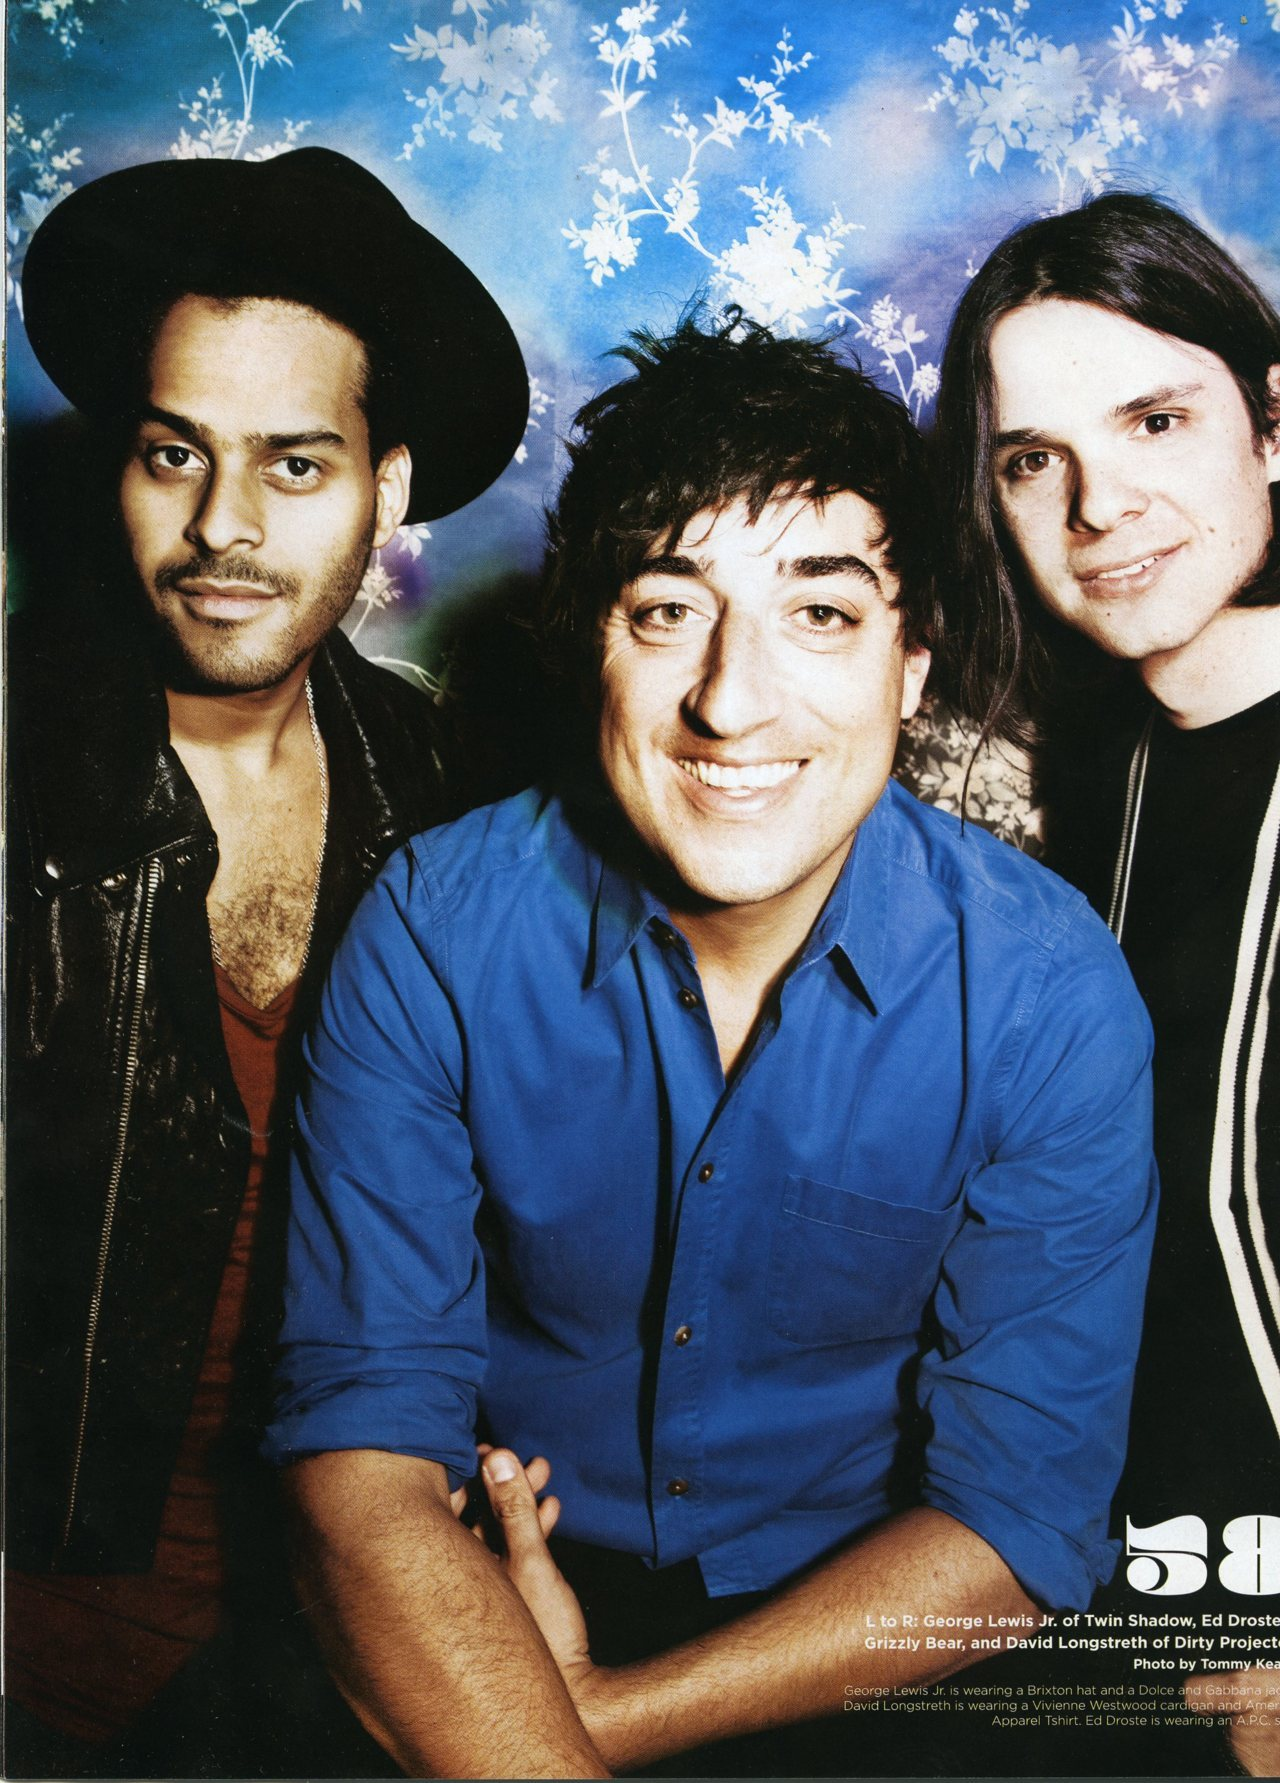 George Lewis (Twin Shadow), Ed Droste (Grizzly Bear) & Dave Longstreth (Dirty Projectors) in Under the Radar Magazine, May 2012 issue